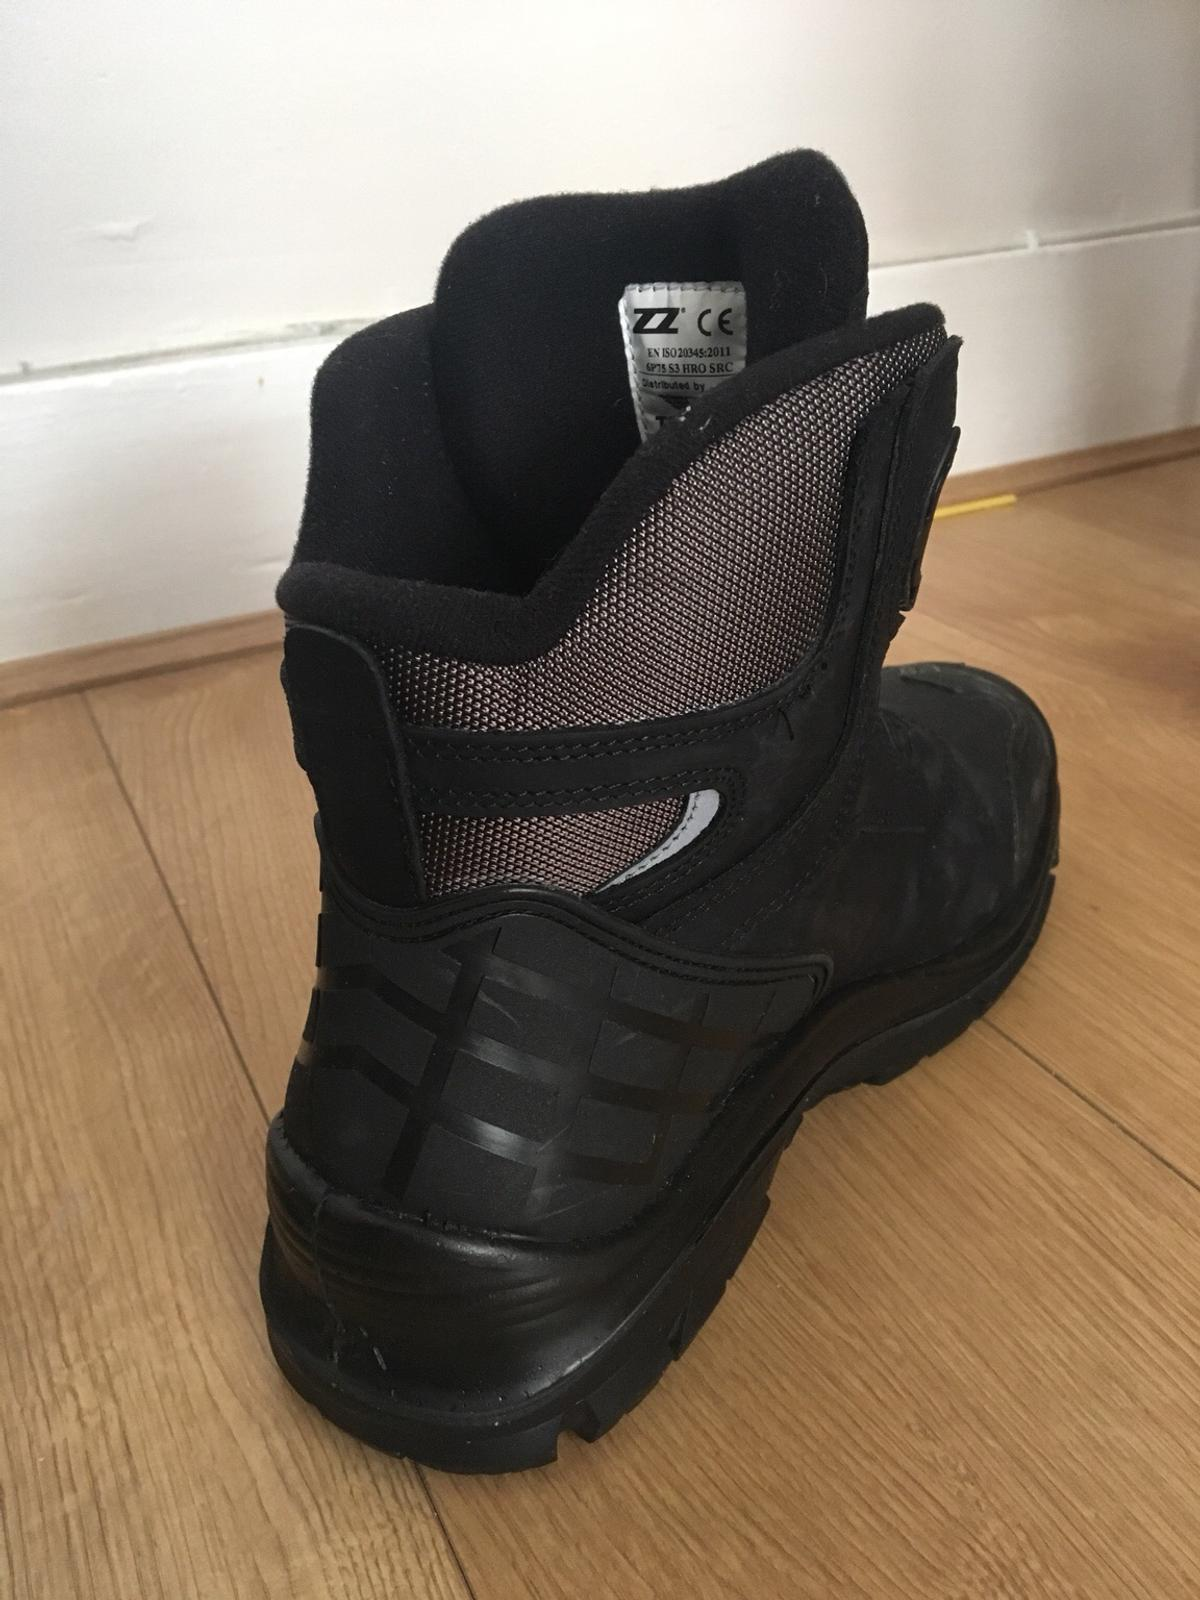 Trojan Minotaur S3 Safety Boots in IG1 London for £40.00 for